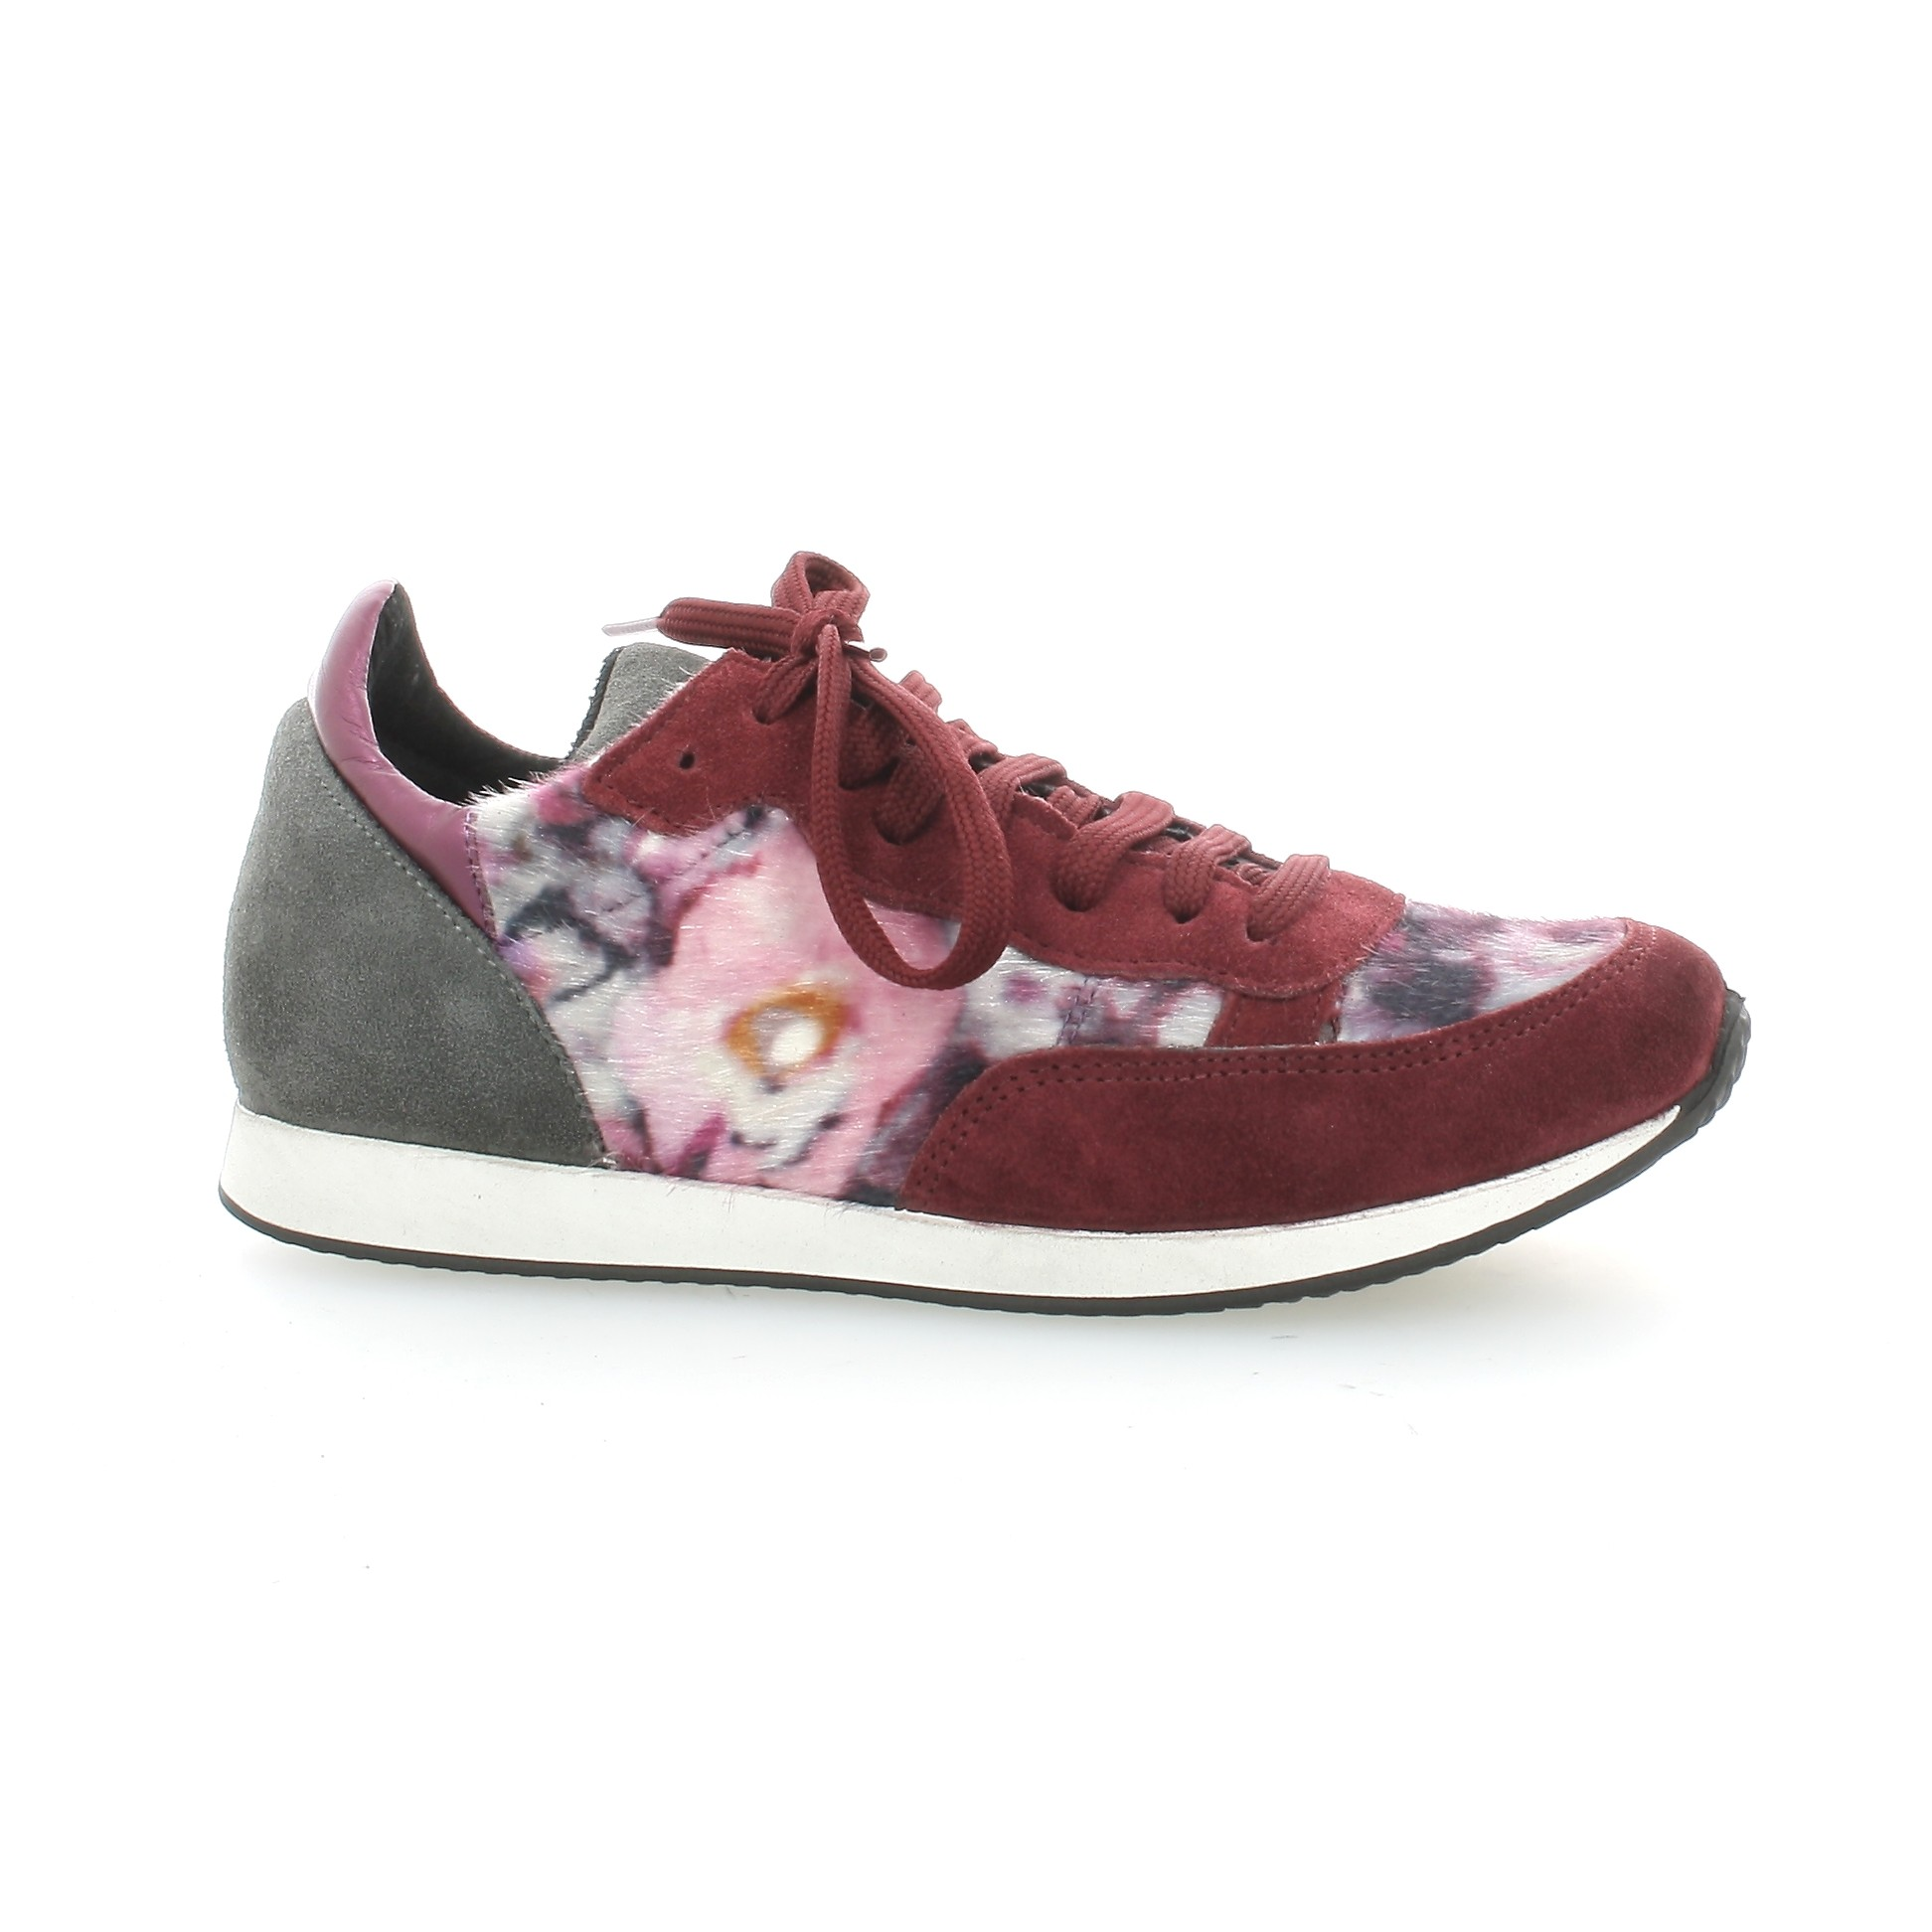 baf44cea2415cb Ippon vintage chaussures femmes - PAO Chaussures